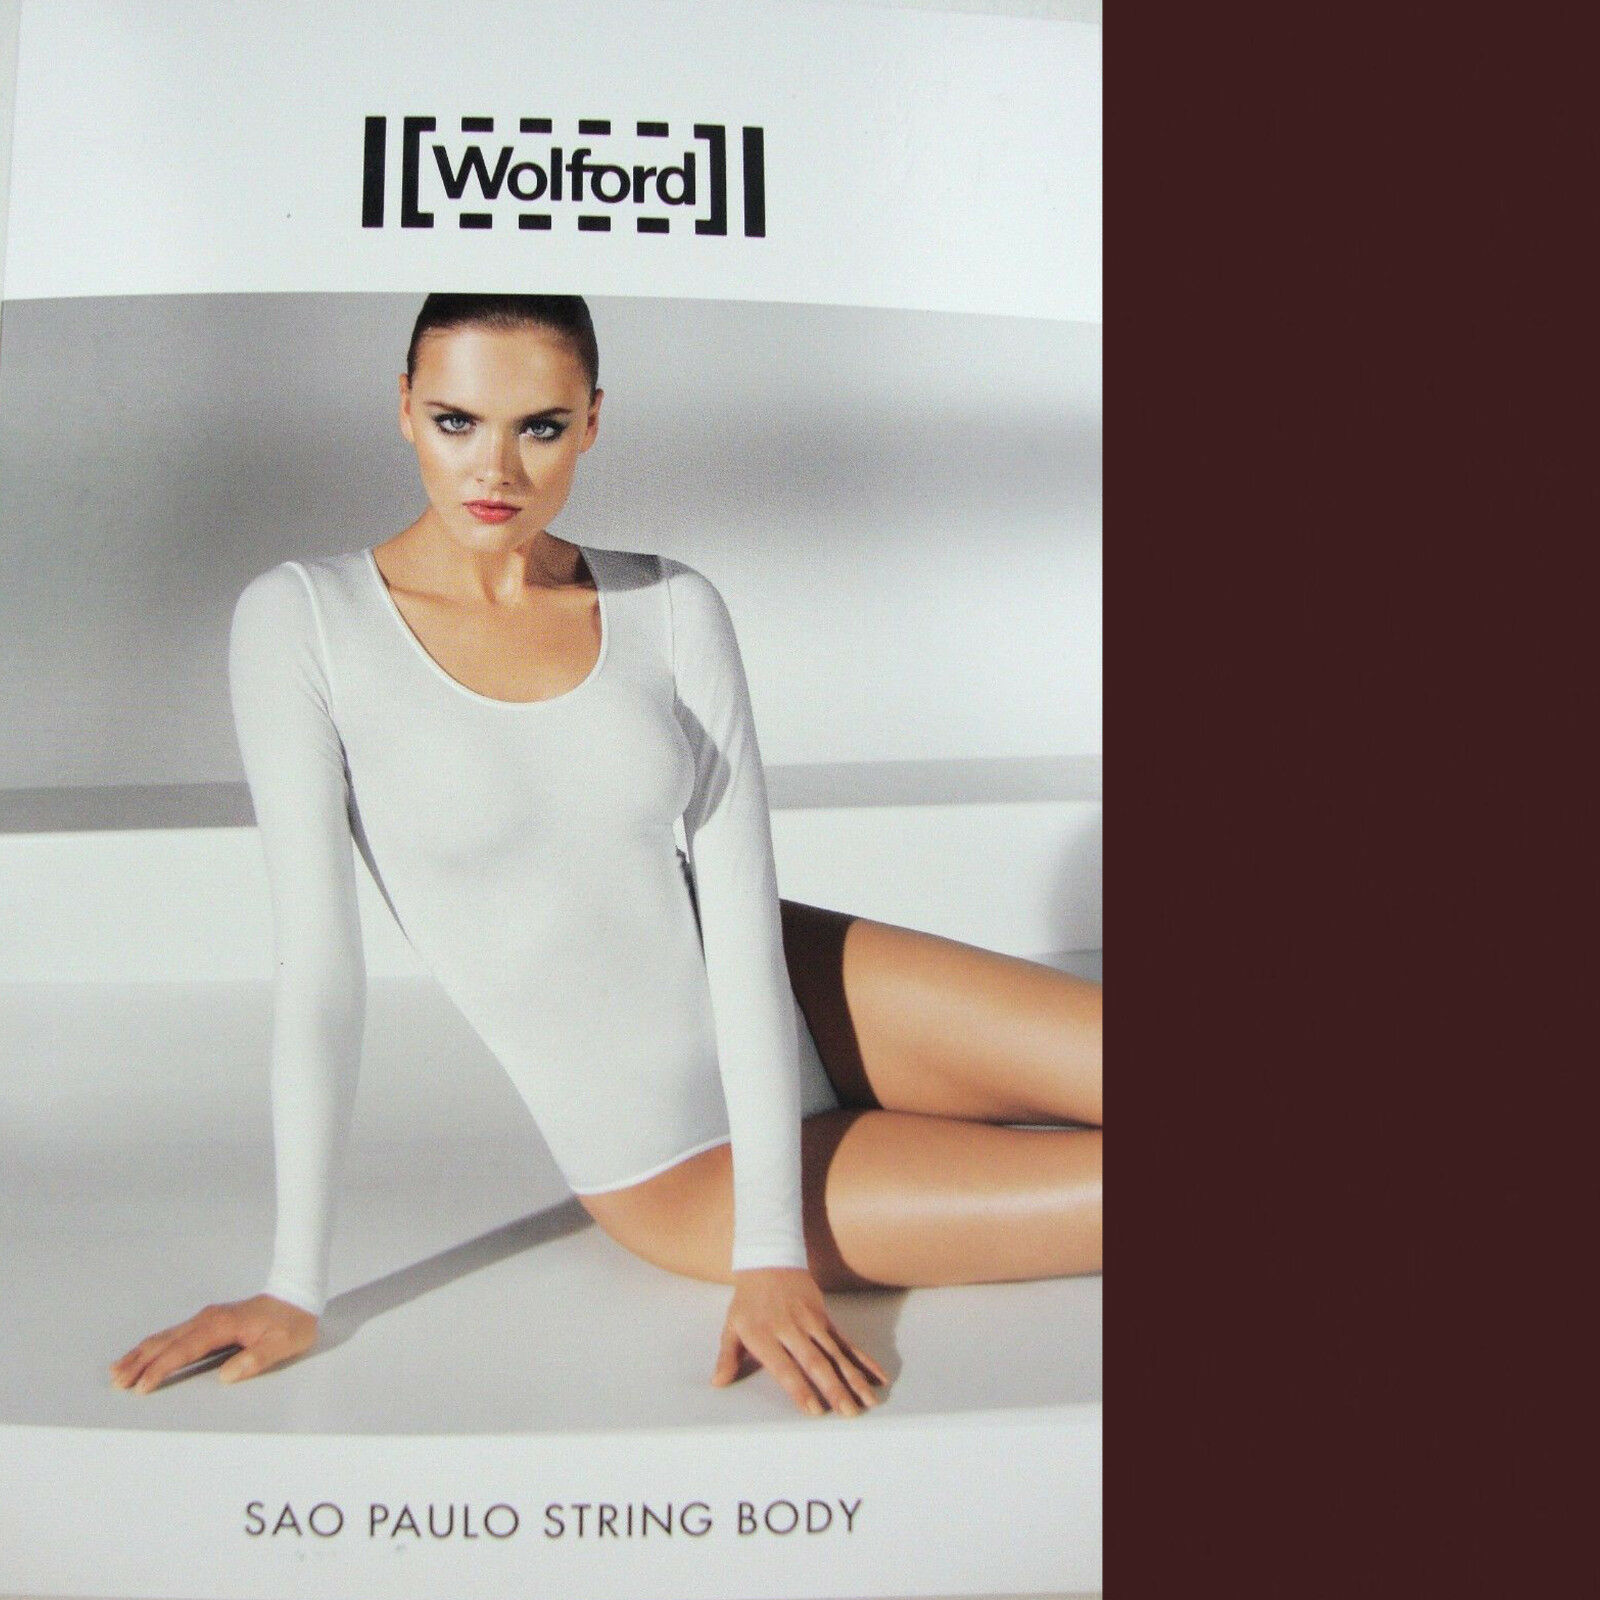 Wolford Sao Paulo Stbague Body  Java... Parfait Styling à de Nombreuses Occasions